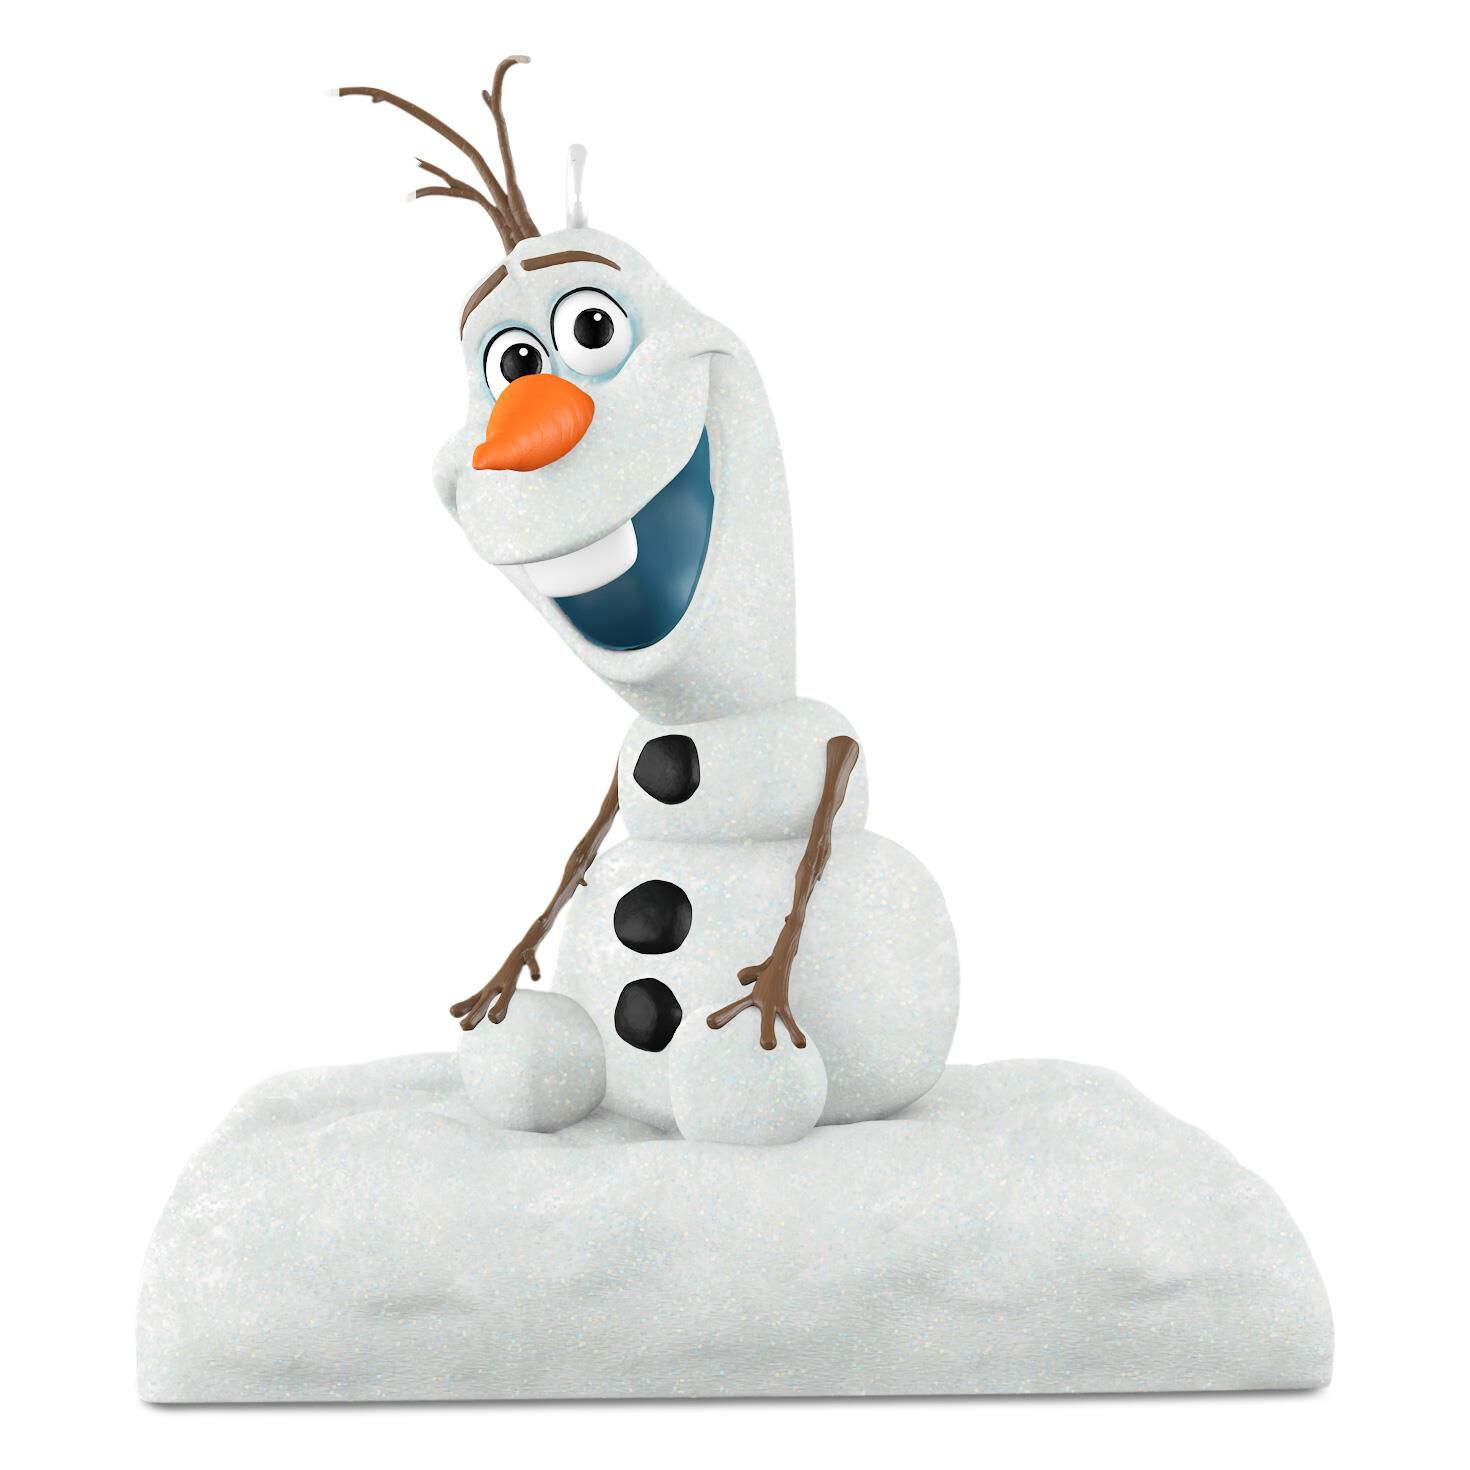 Disney Frozen Olaf Motion-Activated Ornament With Sound - Keepsake ...